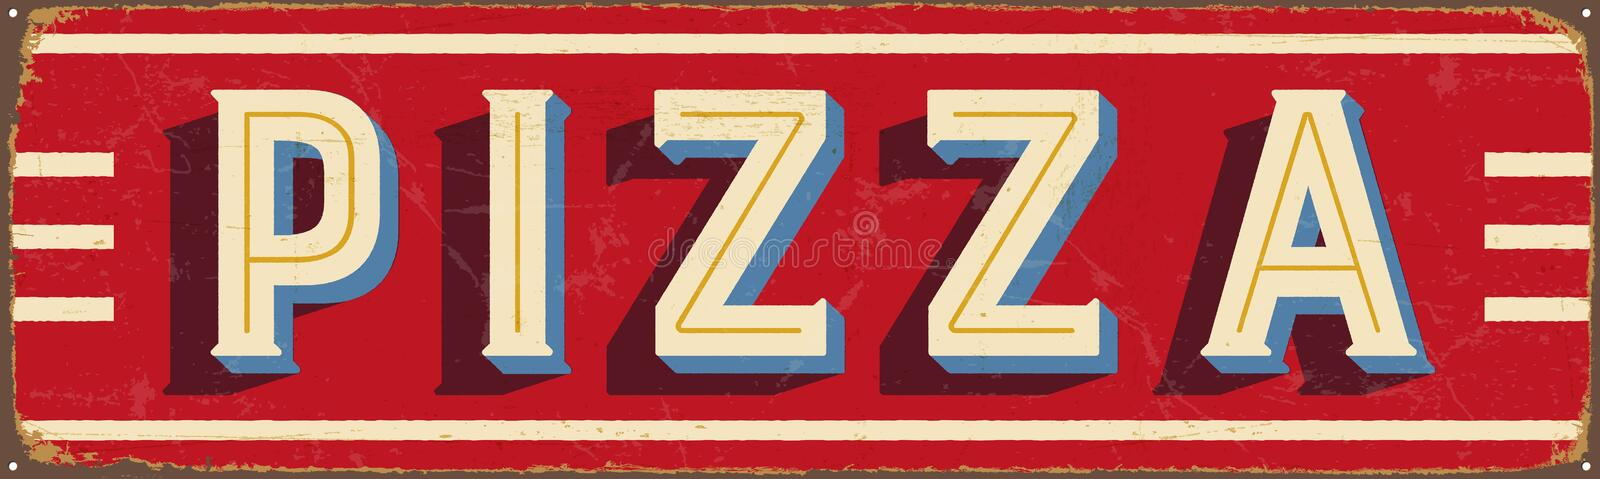 Vintage metal sign - Pizza stock illustration